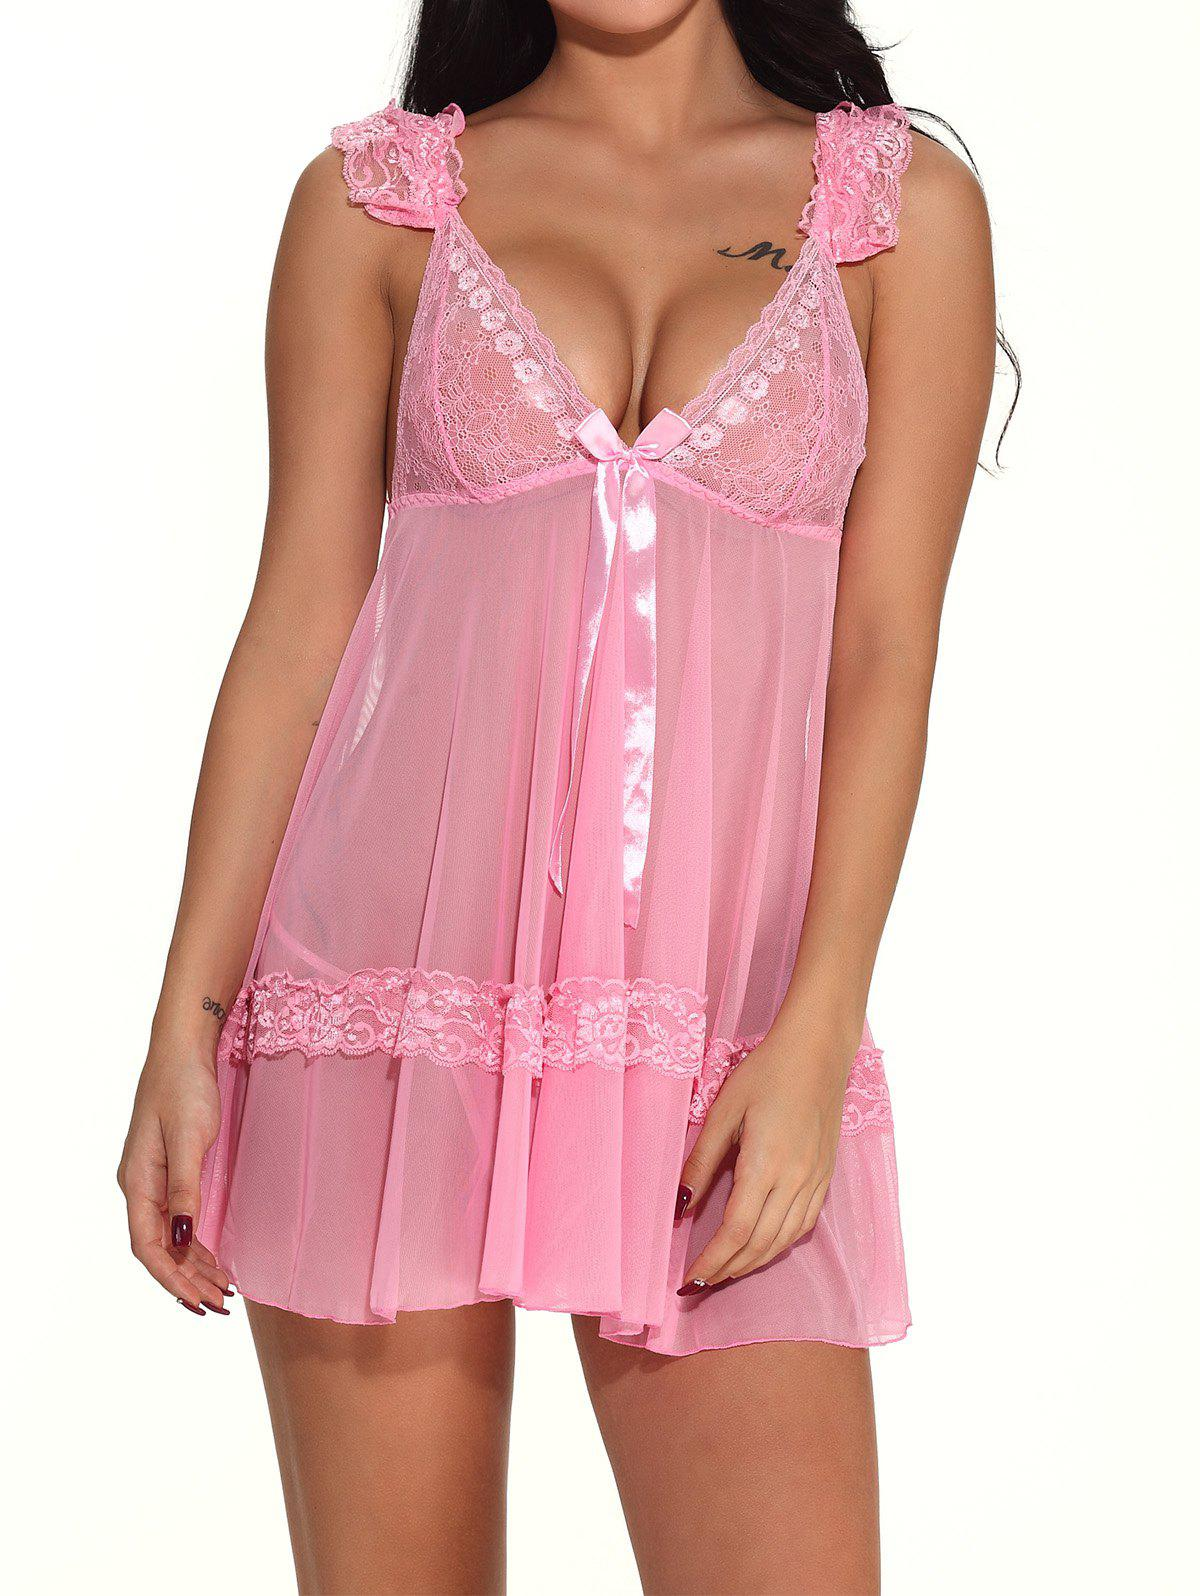 Trendy V Neck sexy nightdress Teddy Hollow-out Lingerie Sleepwear